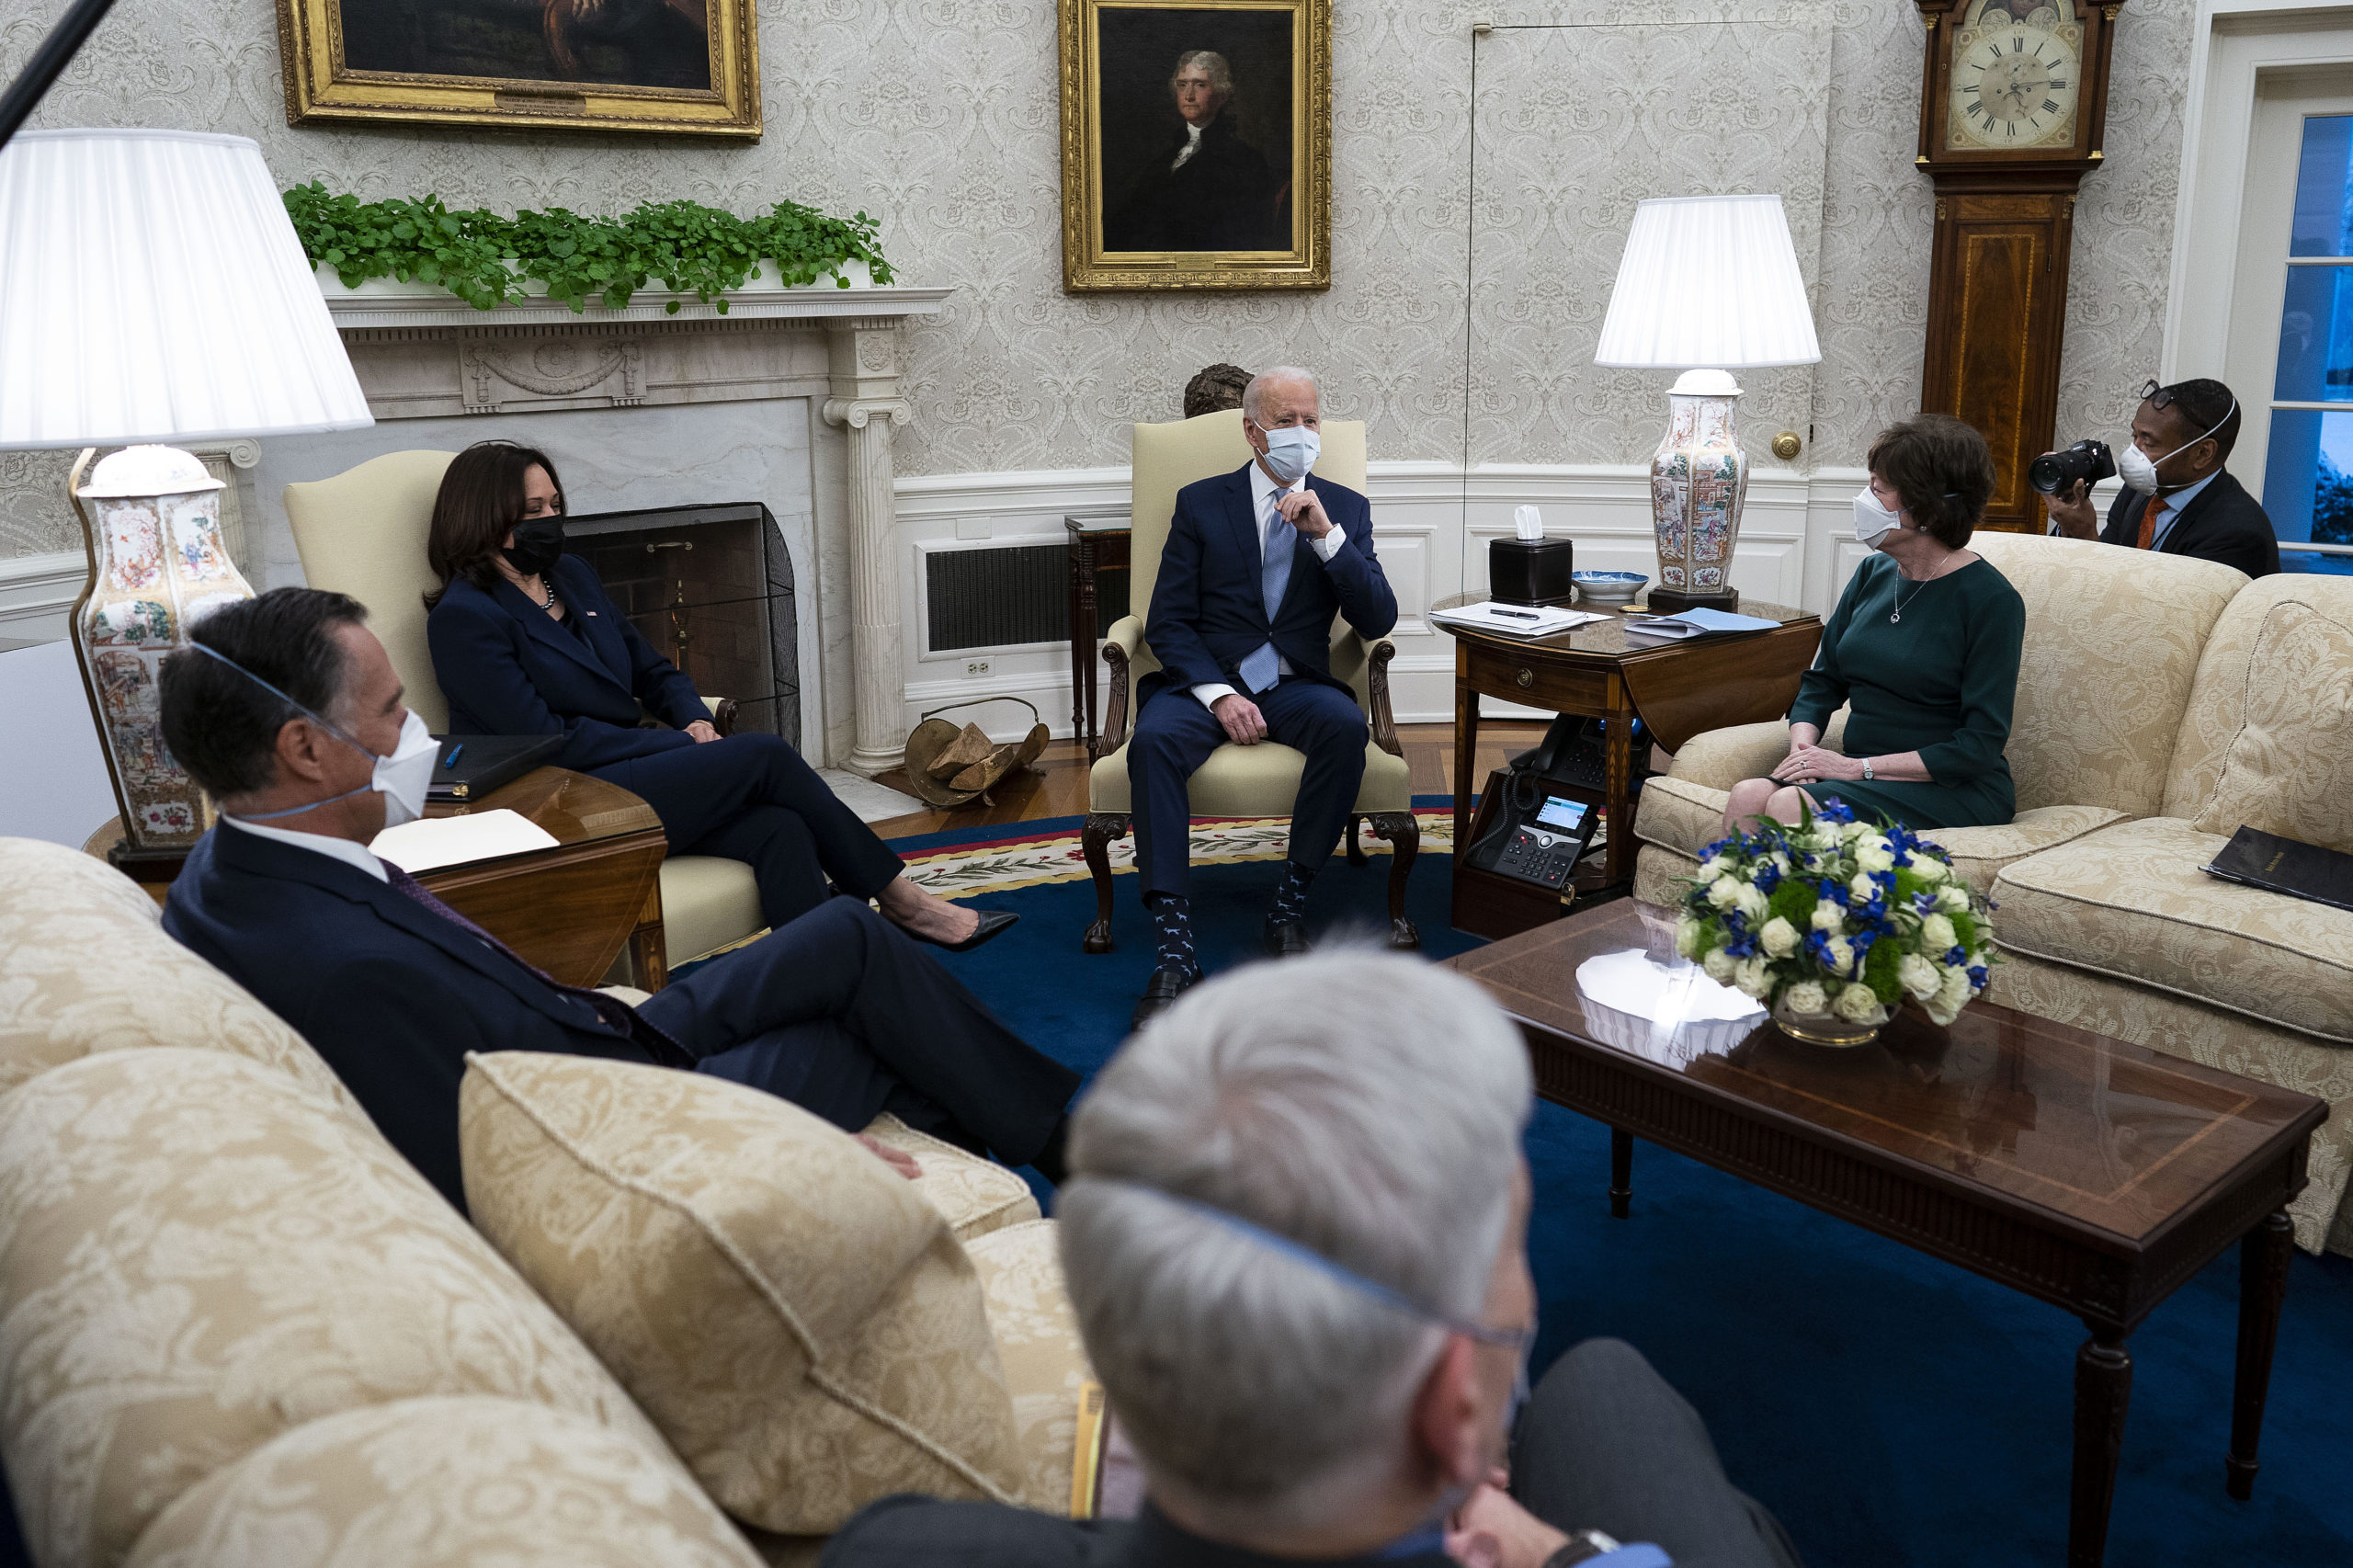 U.S. President Joe Biden (Center R) and Vice President Kamala Harris (Center L) meet with 10 Republican senators, including Mitt Romney (R-UT), Bill Cassidy (R-LA) and Susan Collins (R-ME), in the Oval Office at the White House February 01, 2021 in Washington, DC. The senators requested a meeting with Biden to propose a scaled-back $618 billion stimulus plan in response to the $1.9 trillion coronavirus relief package Biden is currently pushing in Congress. (Photo by Doug Mills-Pool/Getty Images)